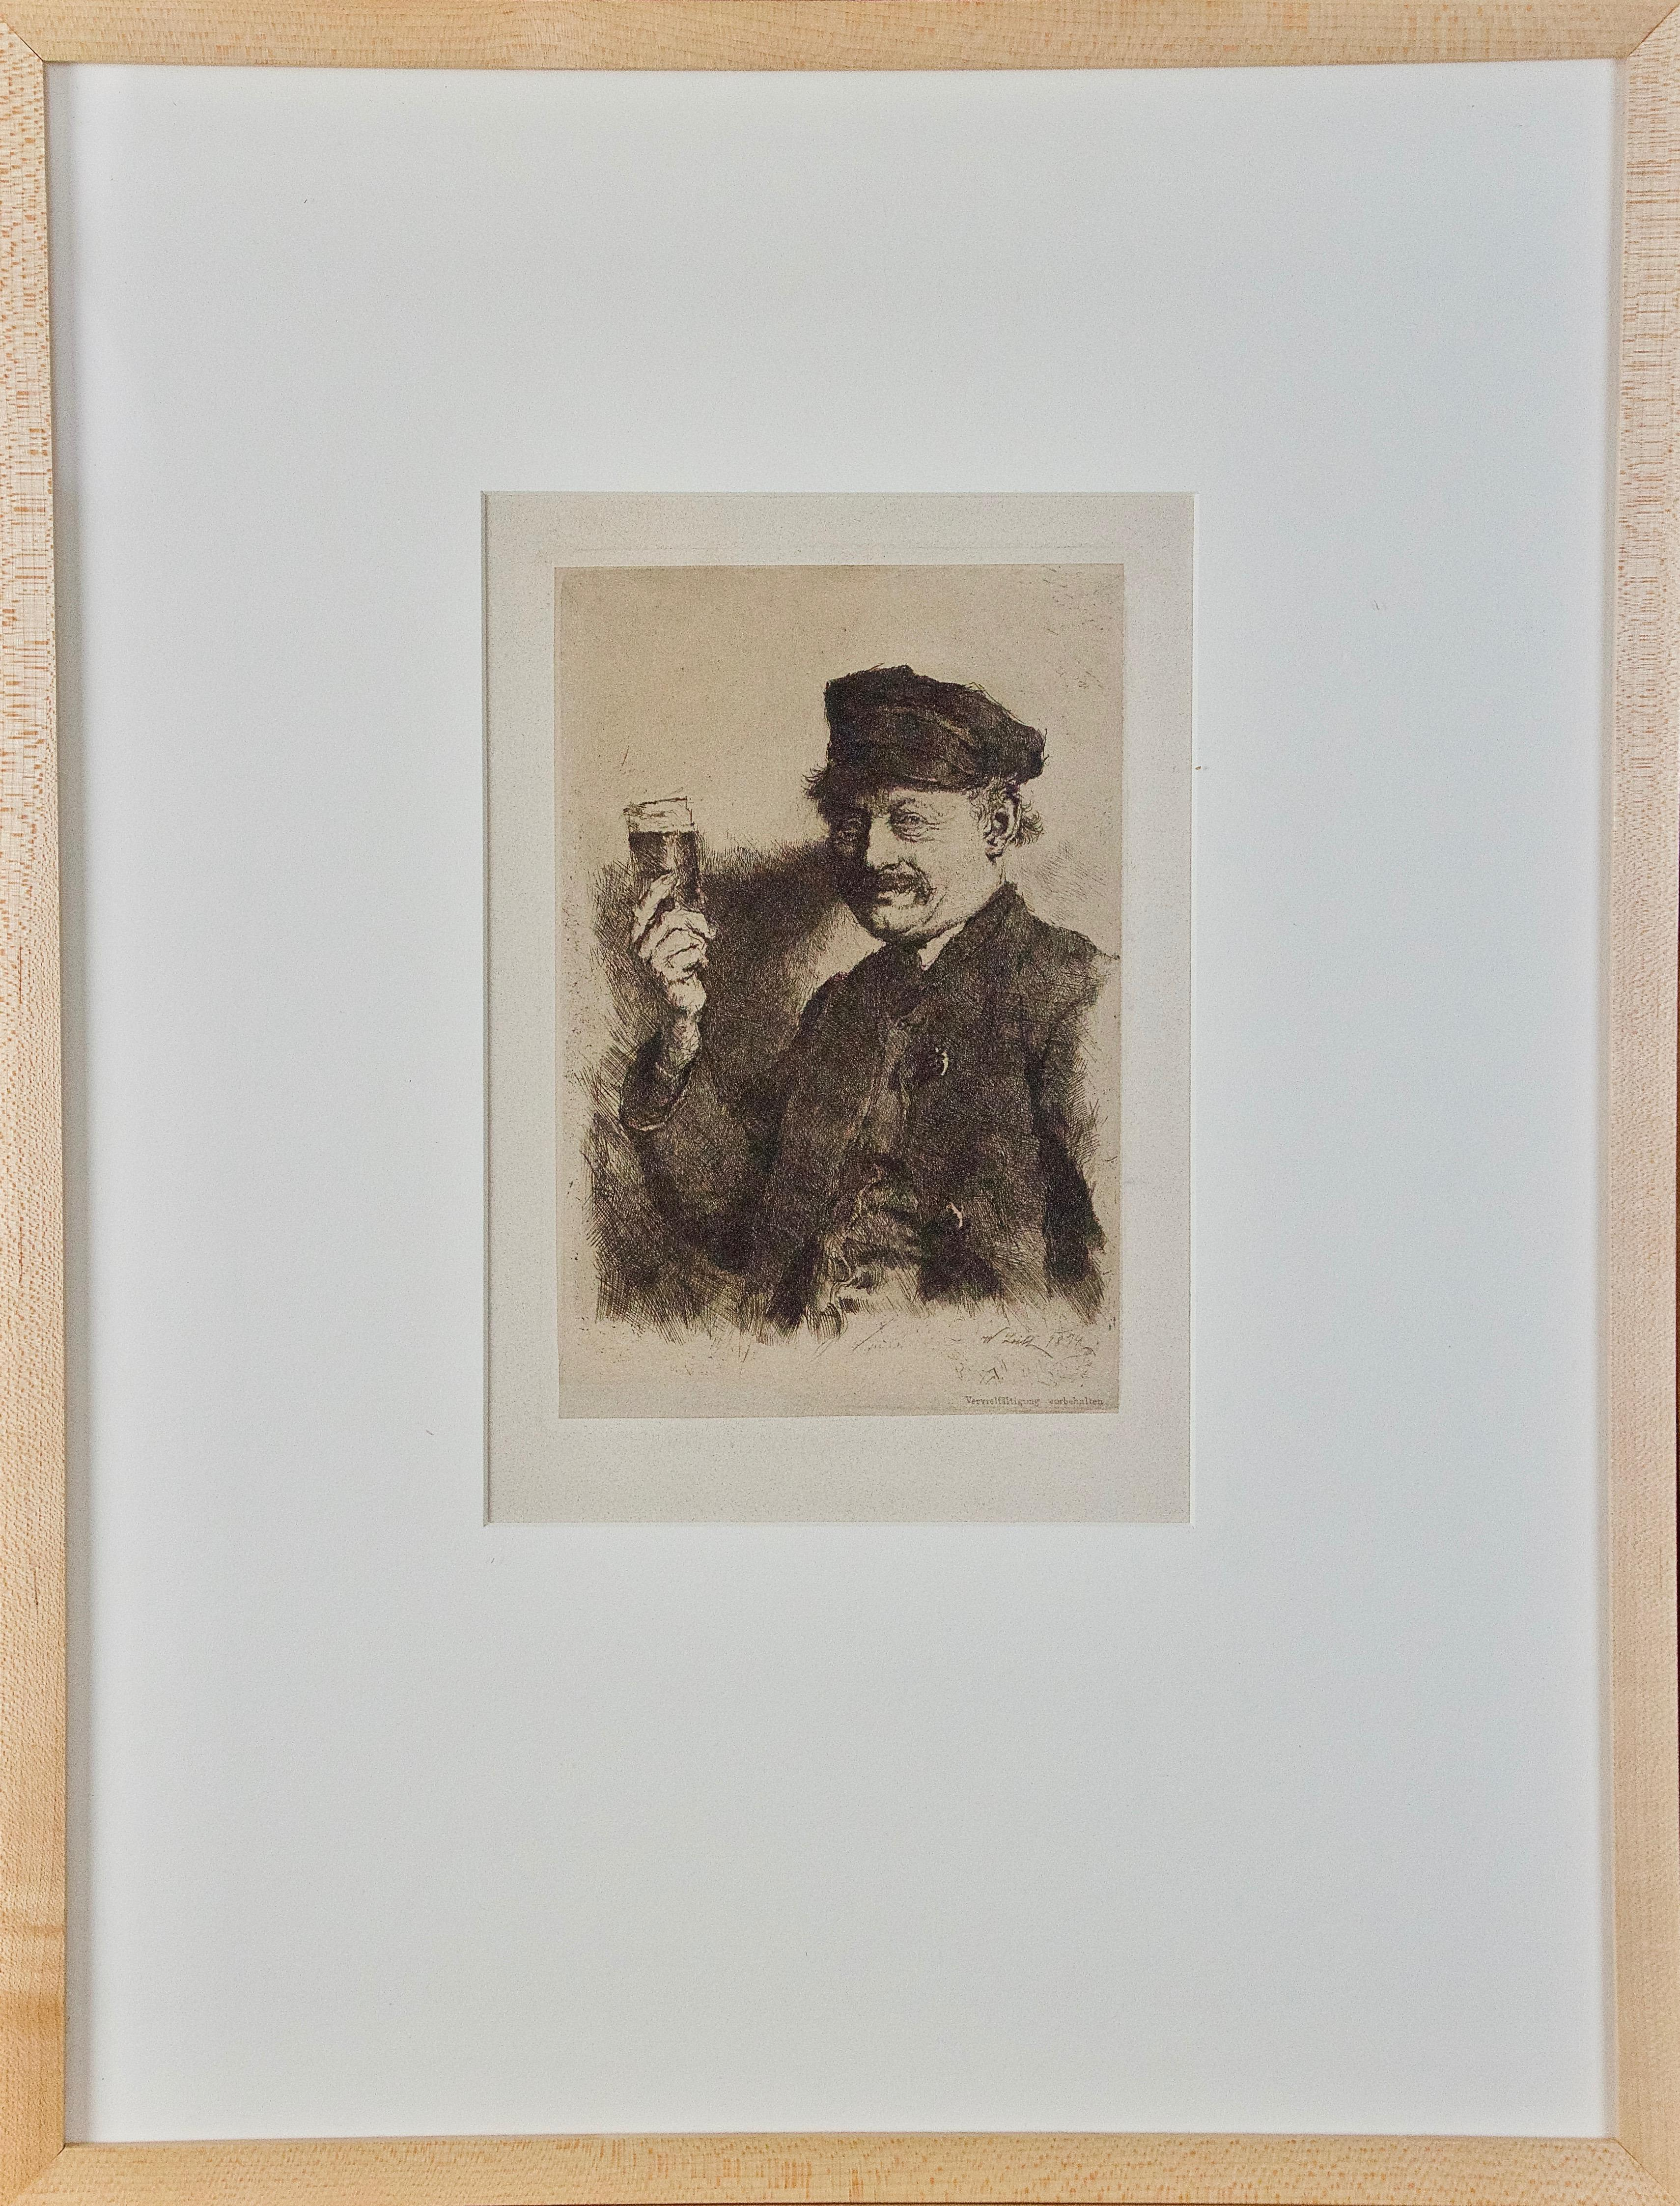 19th Century Etching Der Trinker (The Drinker, Portrait of a Brewer) by Leibl